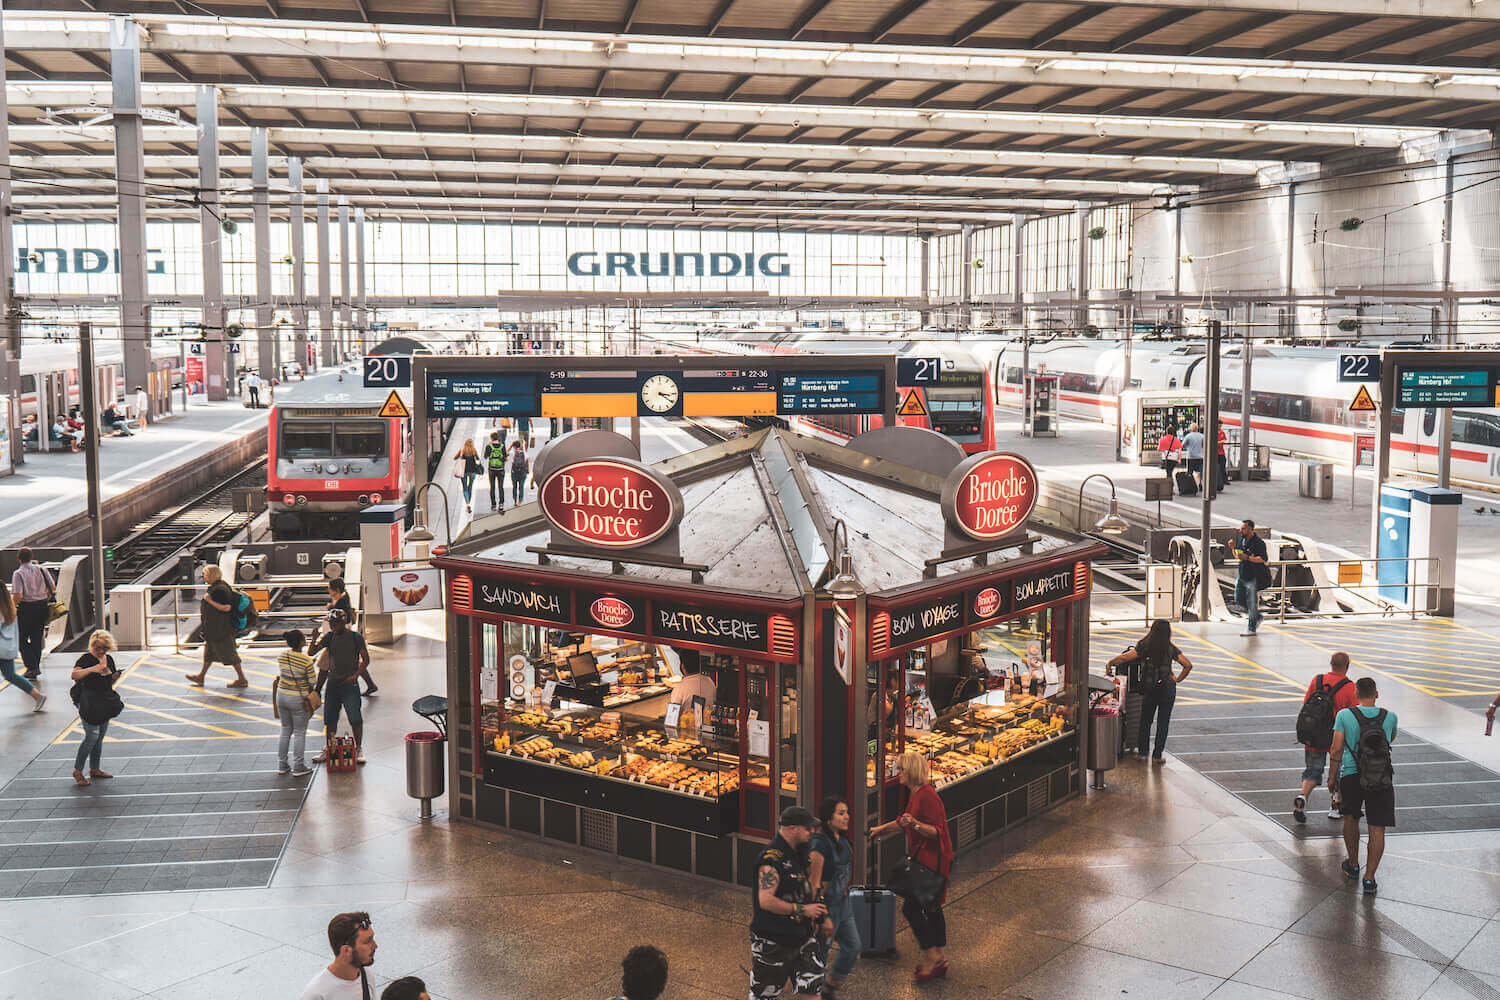 Hm Home München München Hauptbahnhof Guide Everything You Need To Know